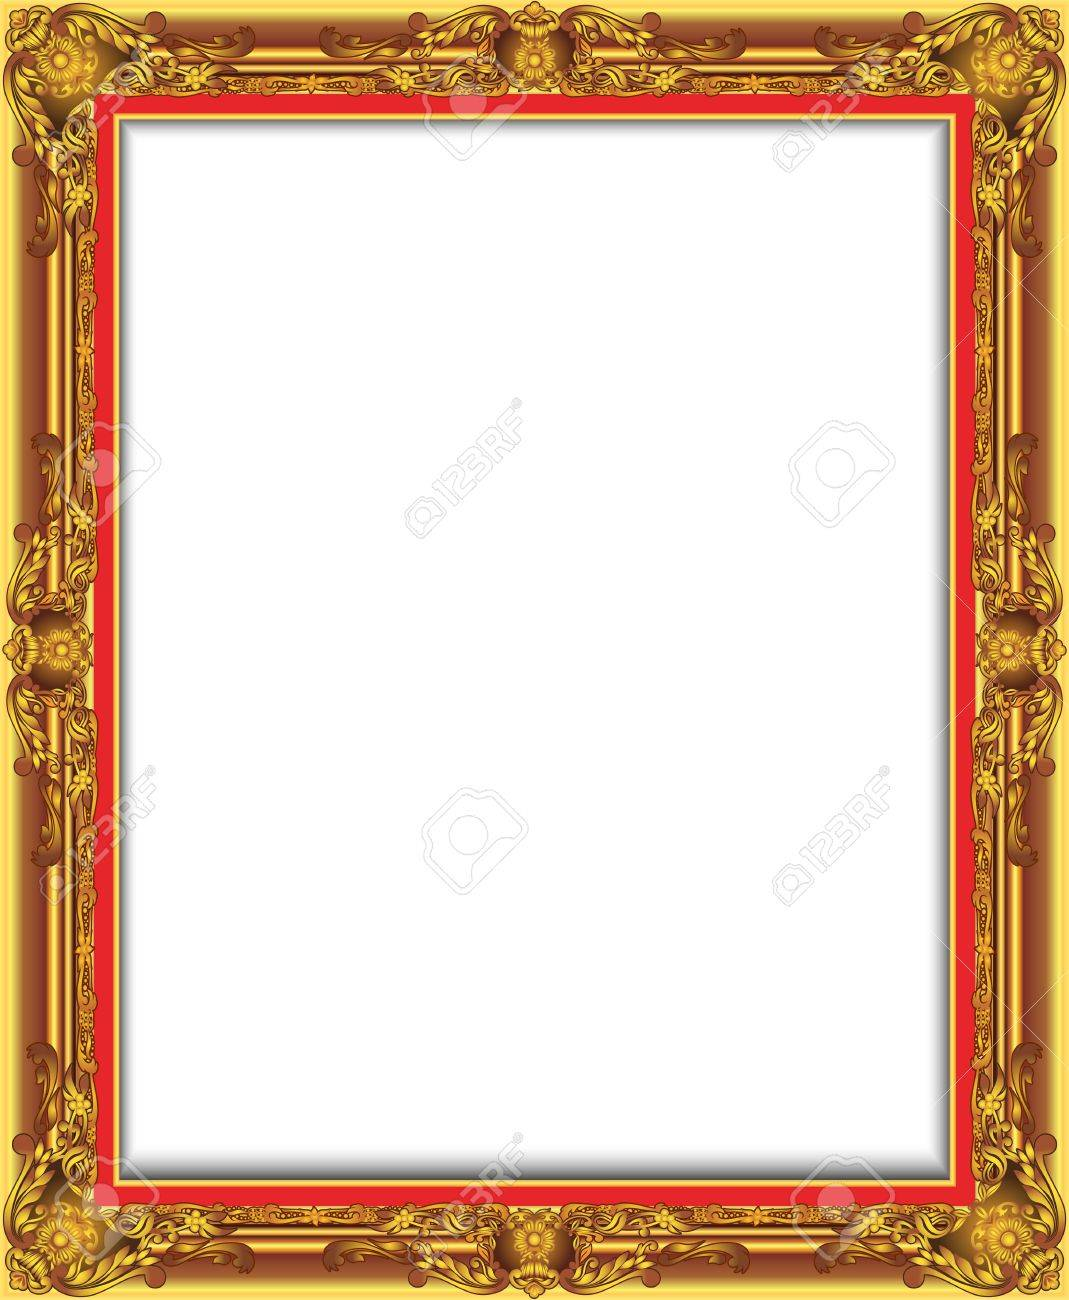 Gold Vintage Frame Decorative Vector With Place For Text Picture Or Design